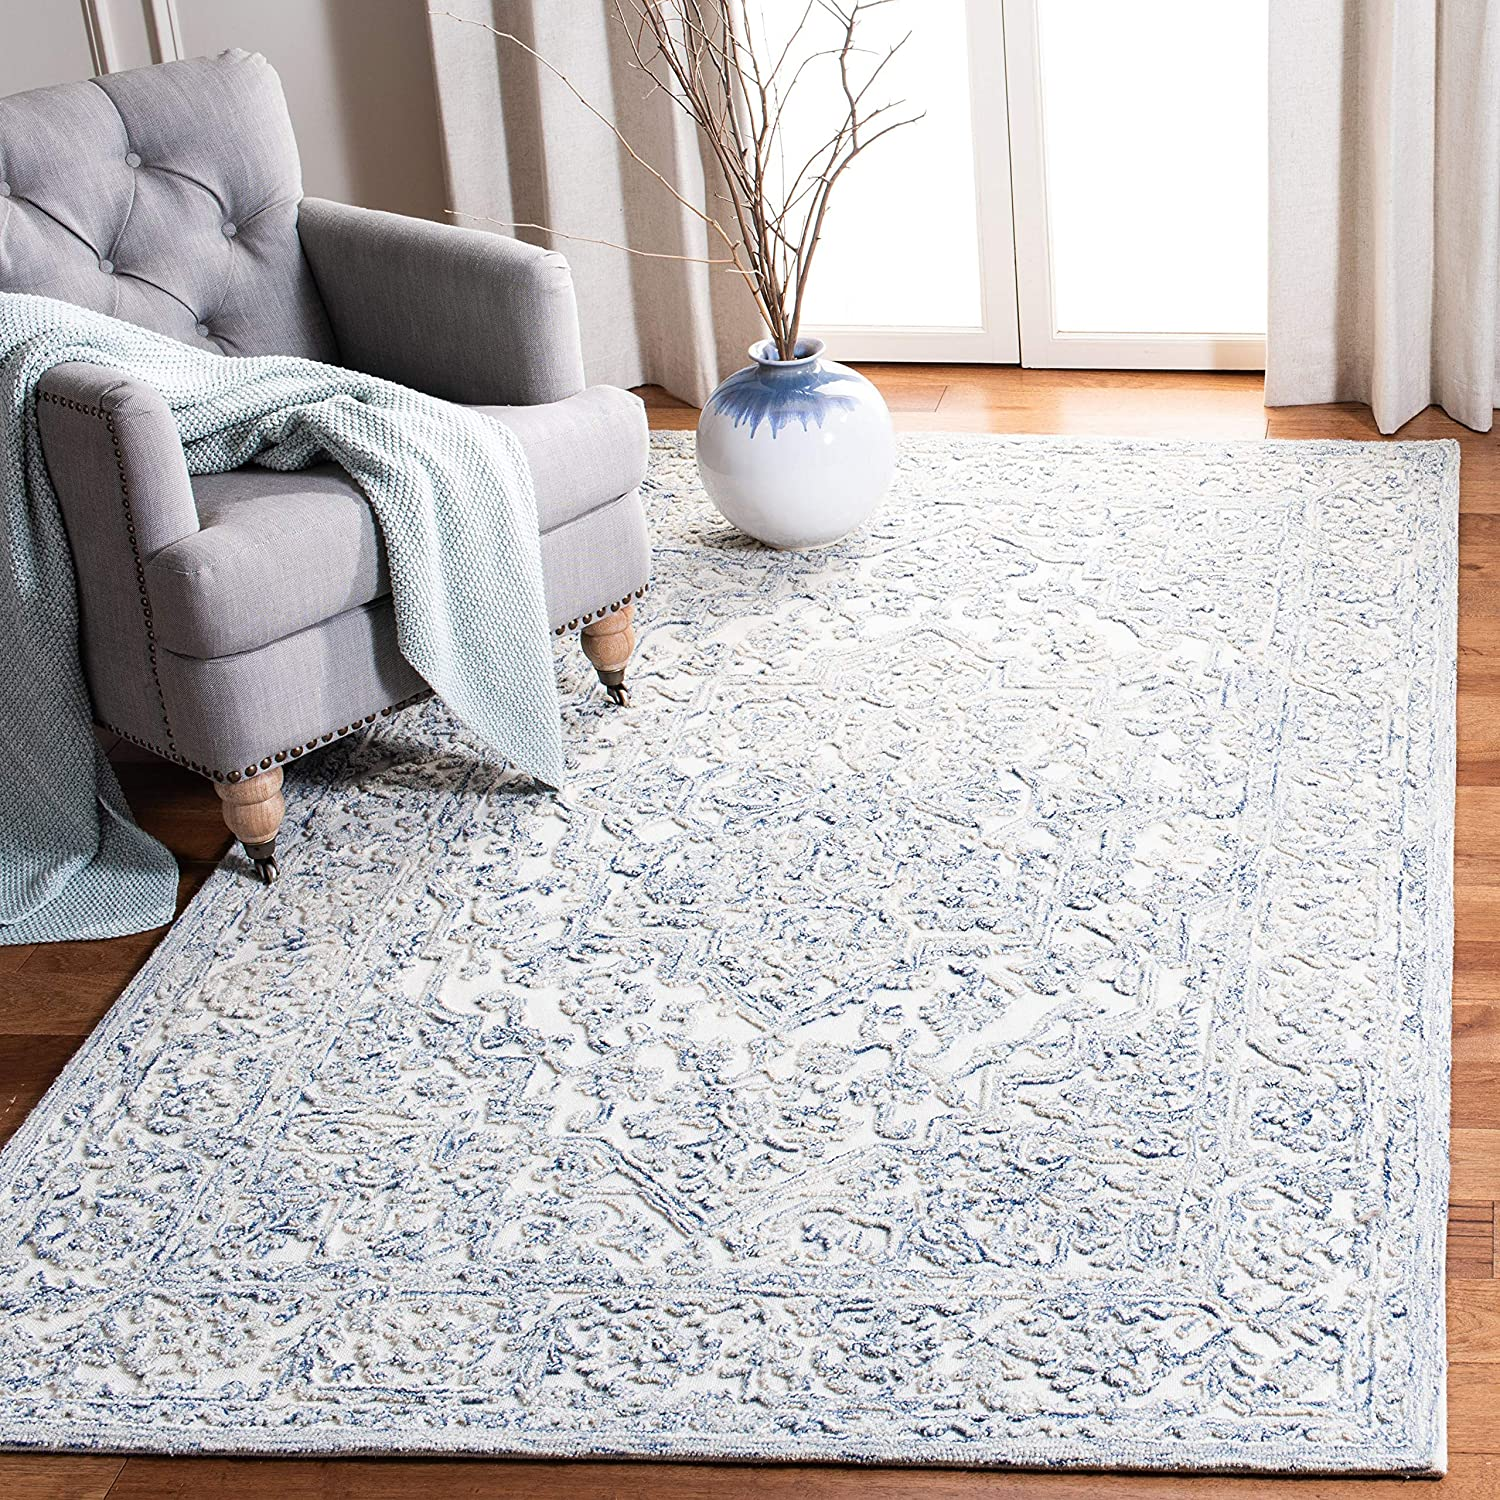 Amazon Com Safavieh Trace Collection Trc302m Handmade Premium Wool Area Rug 5 X 8 Ivory Blue Furniture Decor